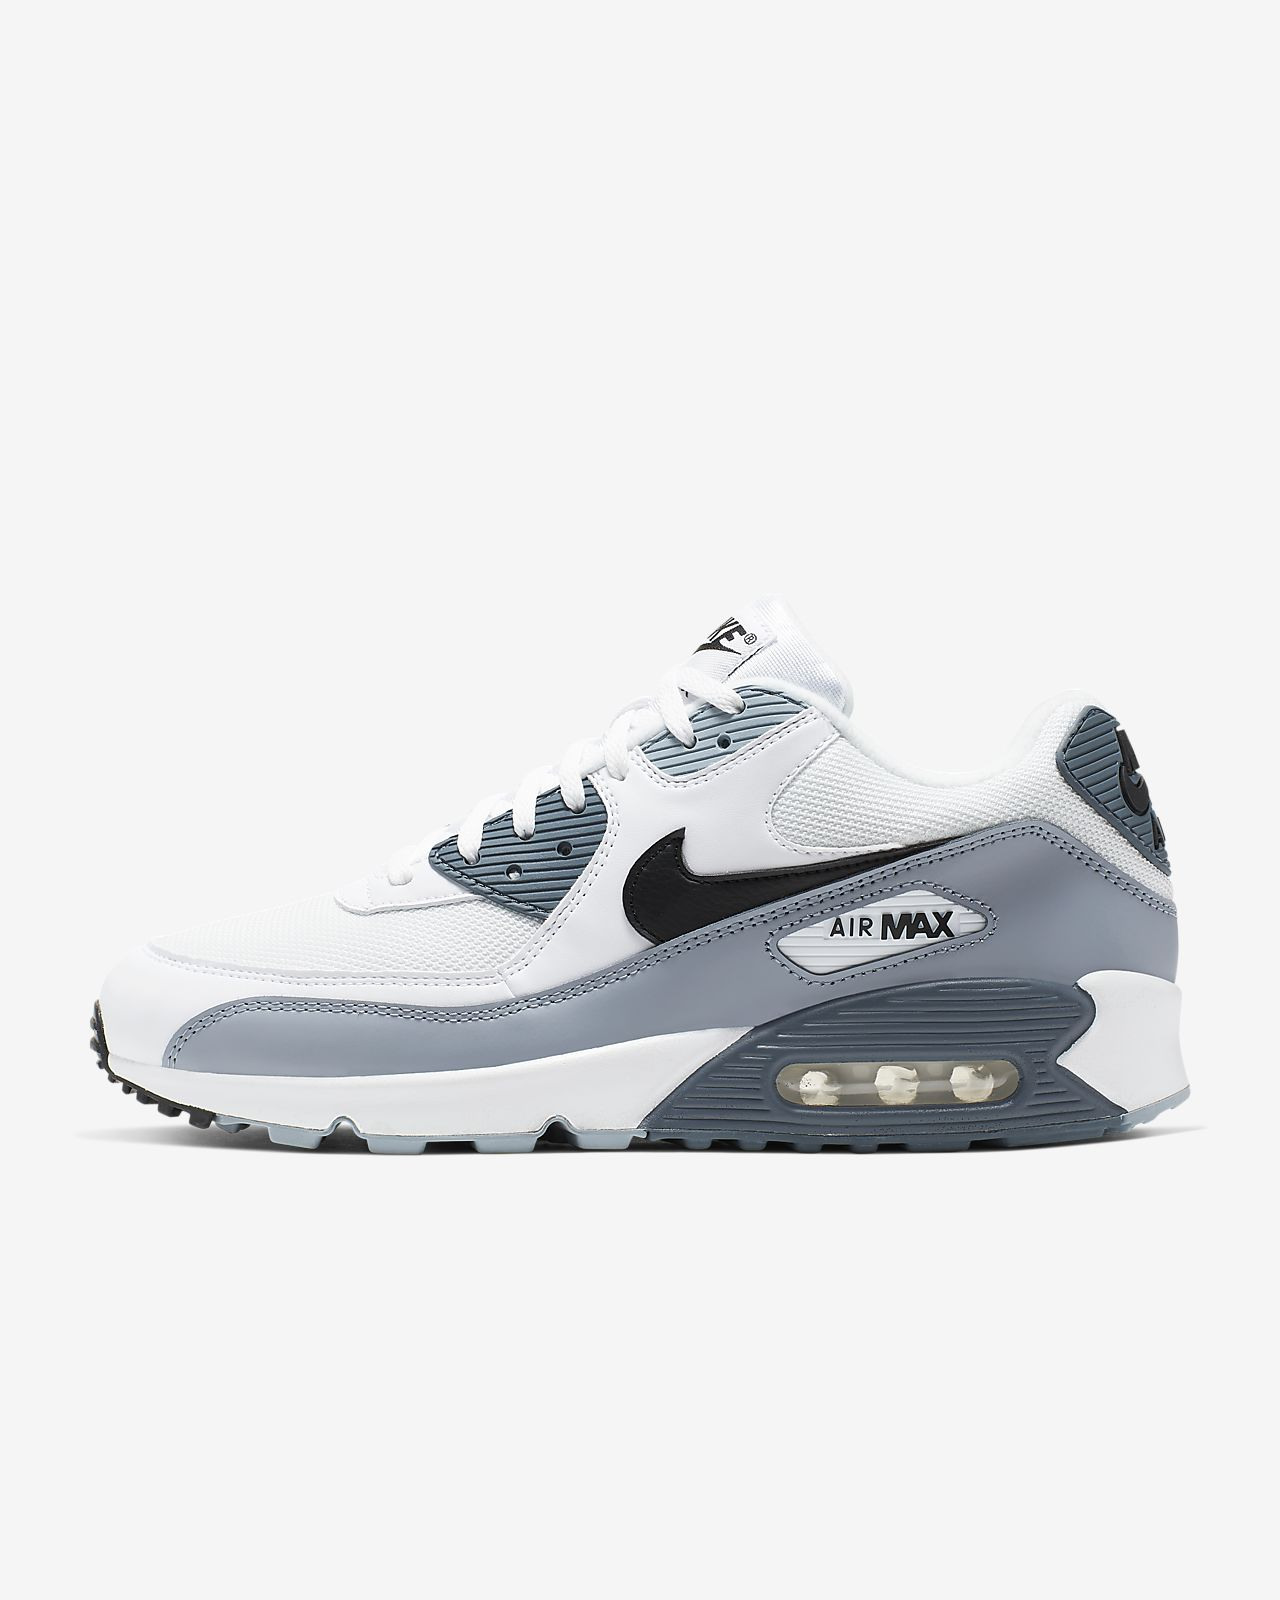 san francisco cc395 eeb3b ... Nike Air Max 90 Essential Herrenschuh